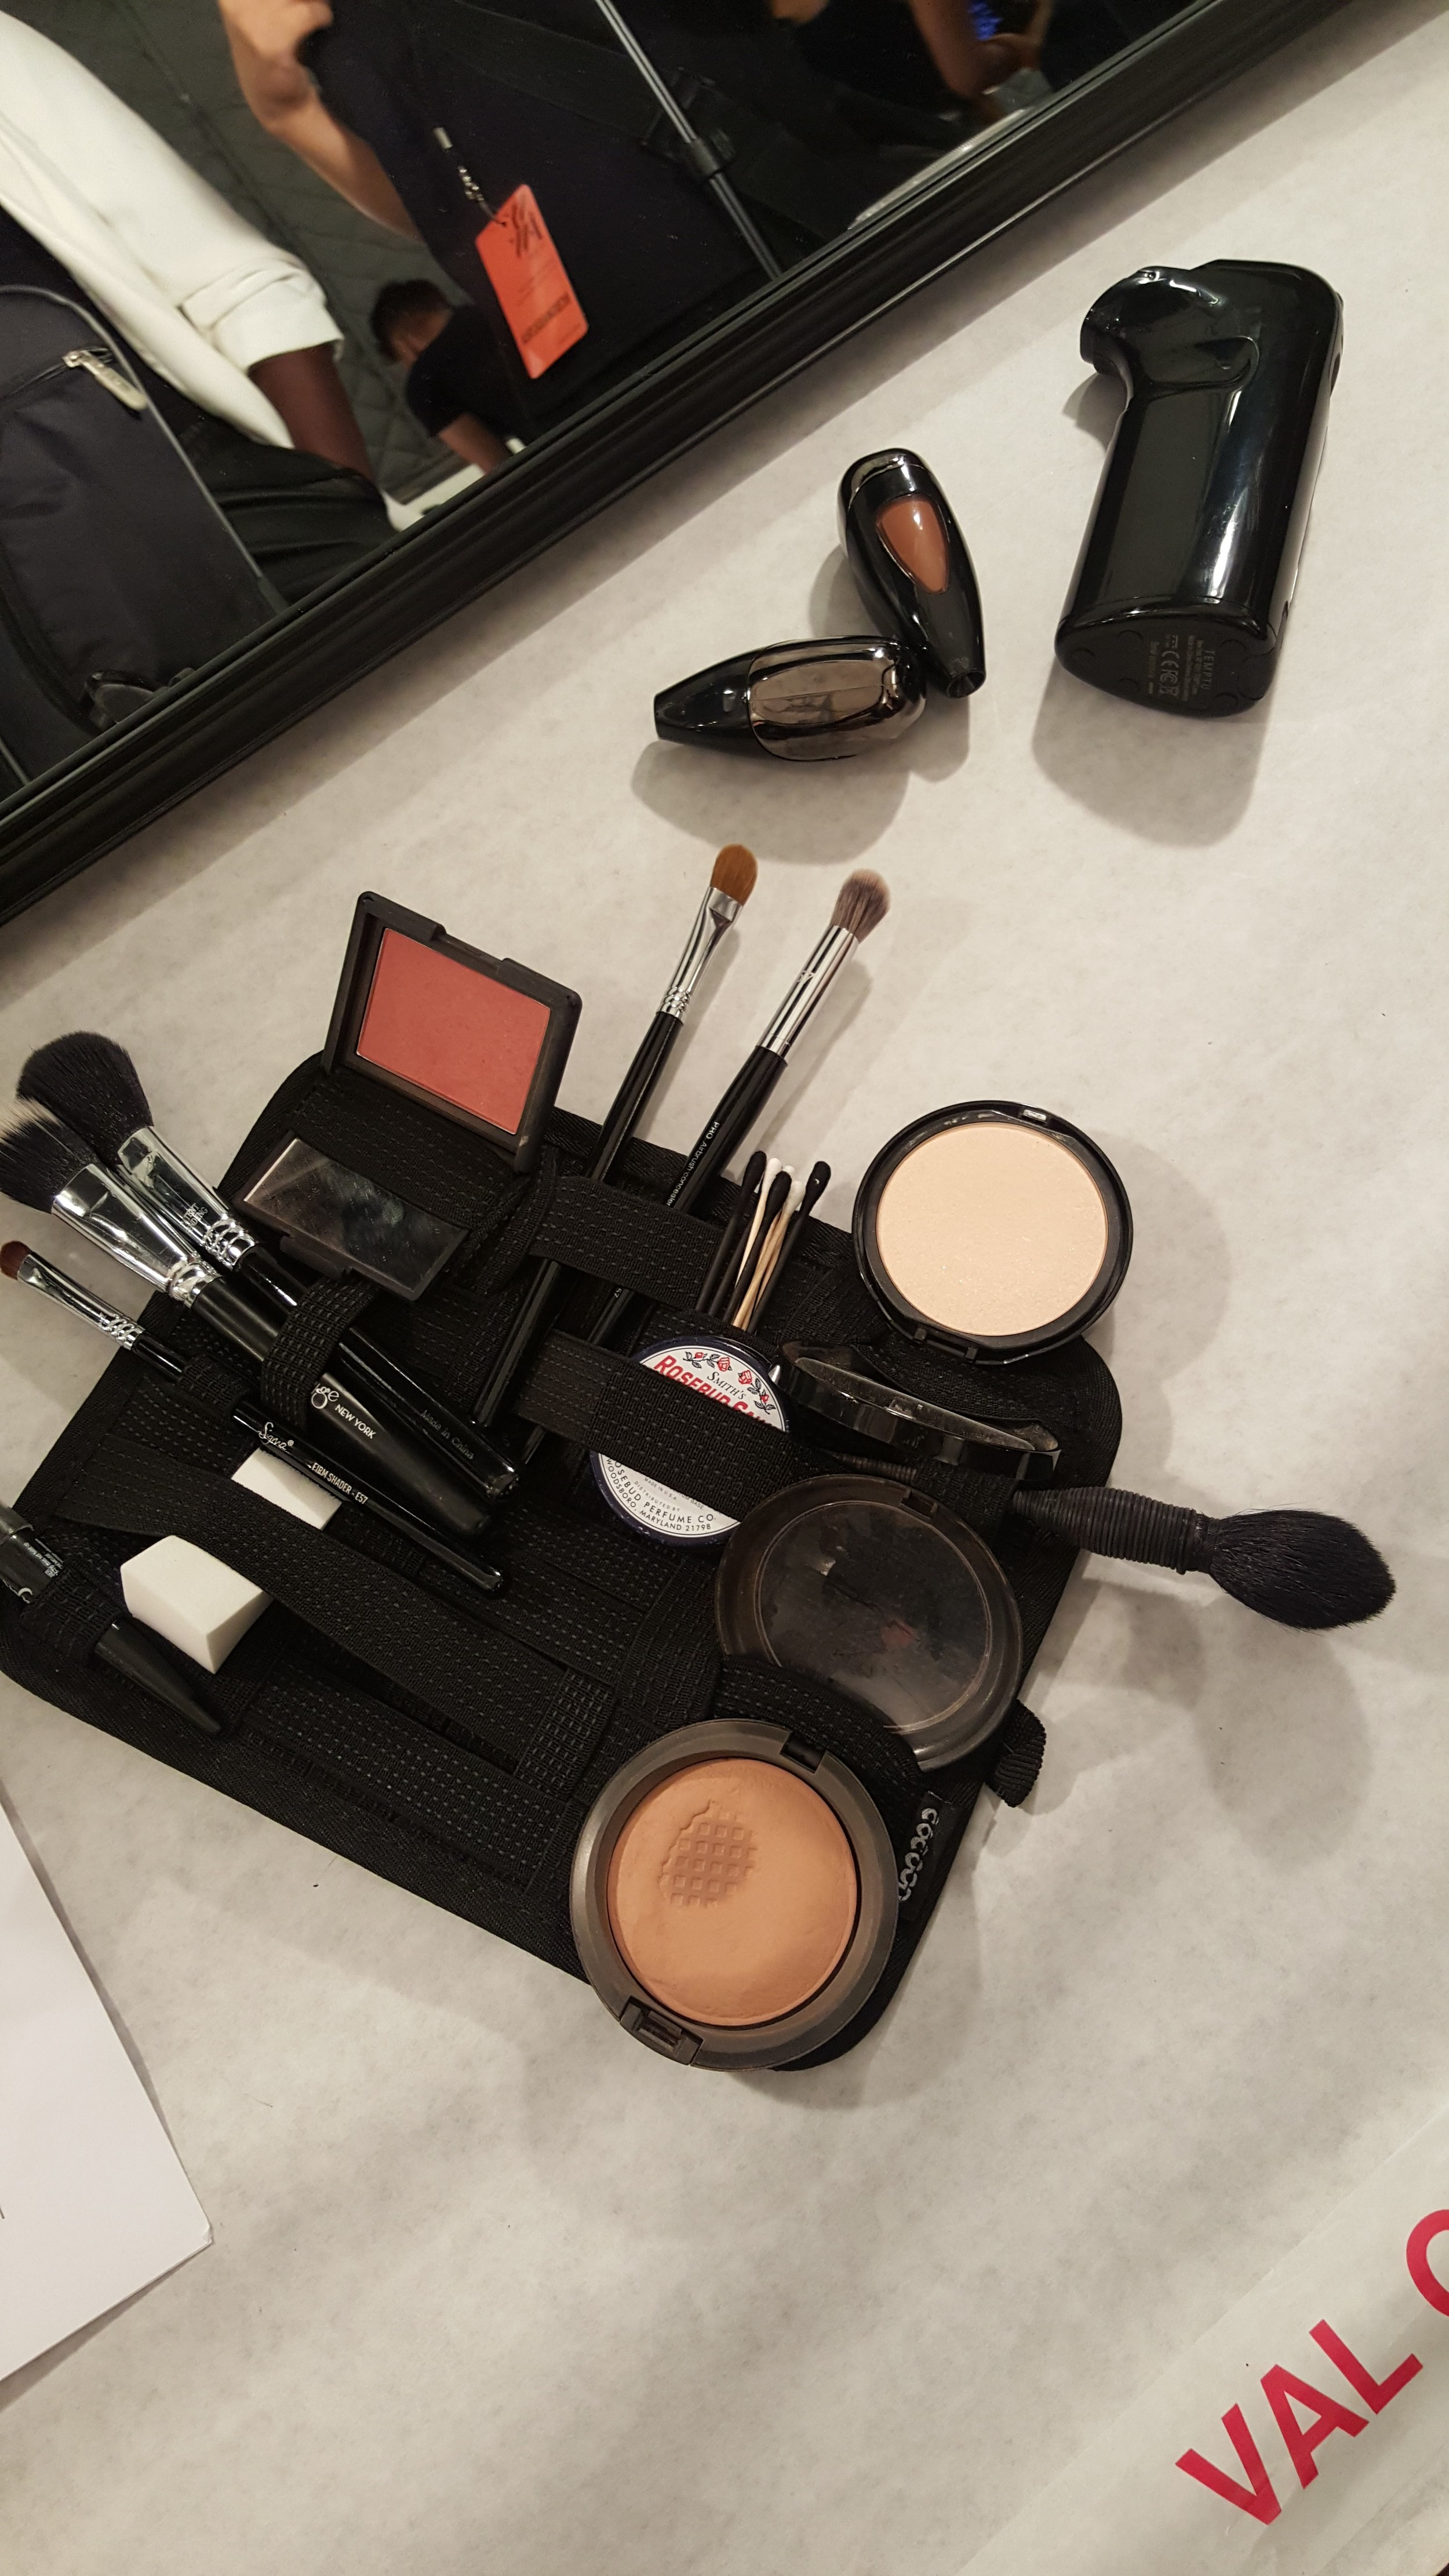 Touch up kit backstage at BCBG NYFW - per Val Garland's suggestion from Mastered Class